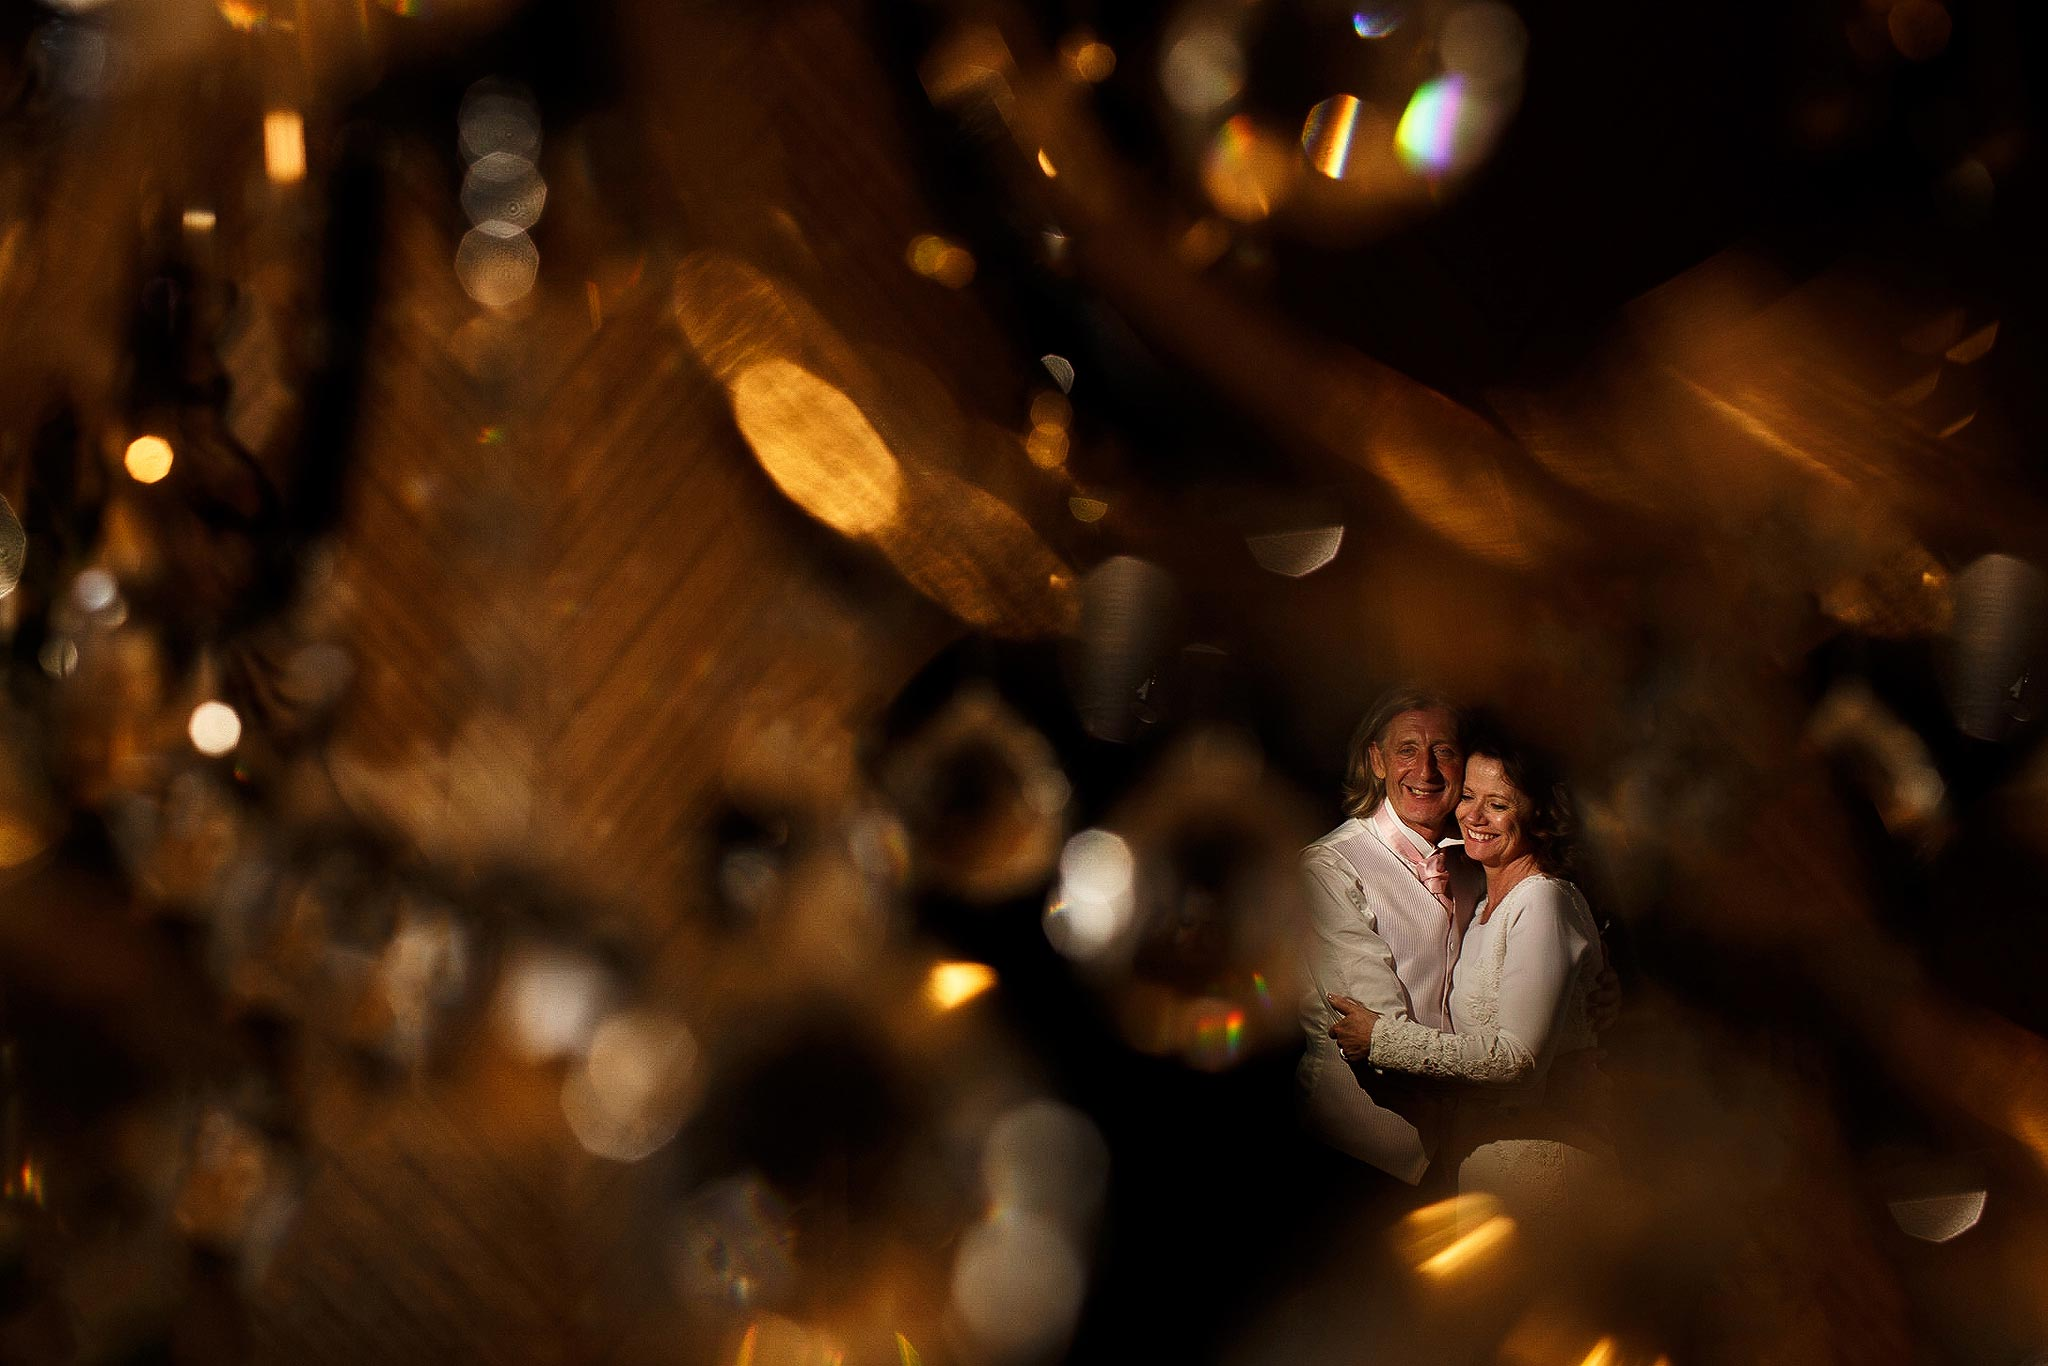 Creative evening wedding portrait of bride and groom at Stirk House Hotel in Lancashire using crystals and mag mod flash modifiers